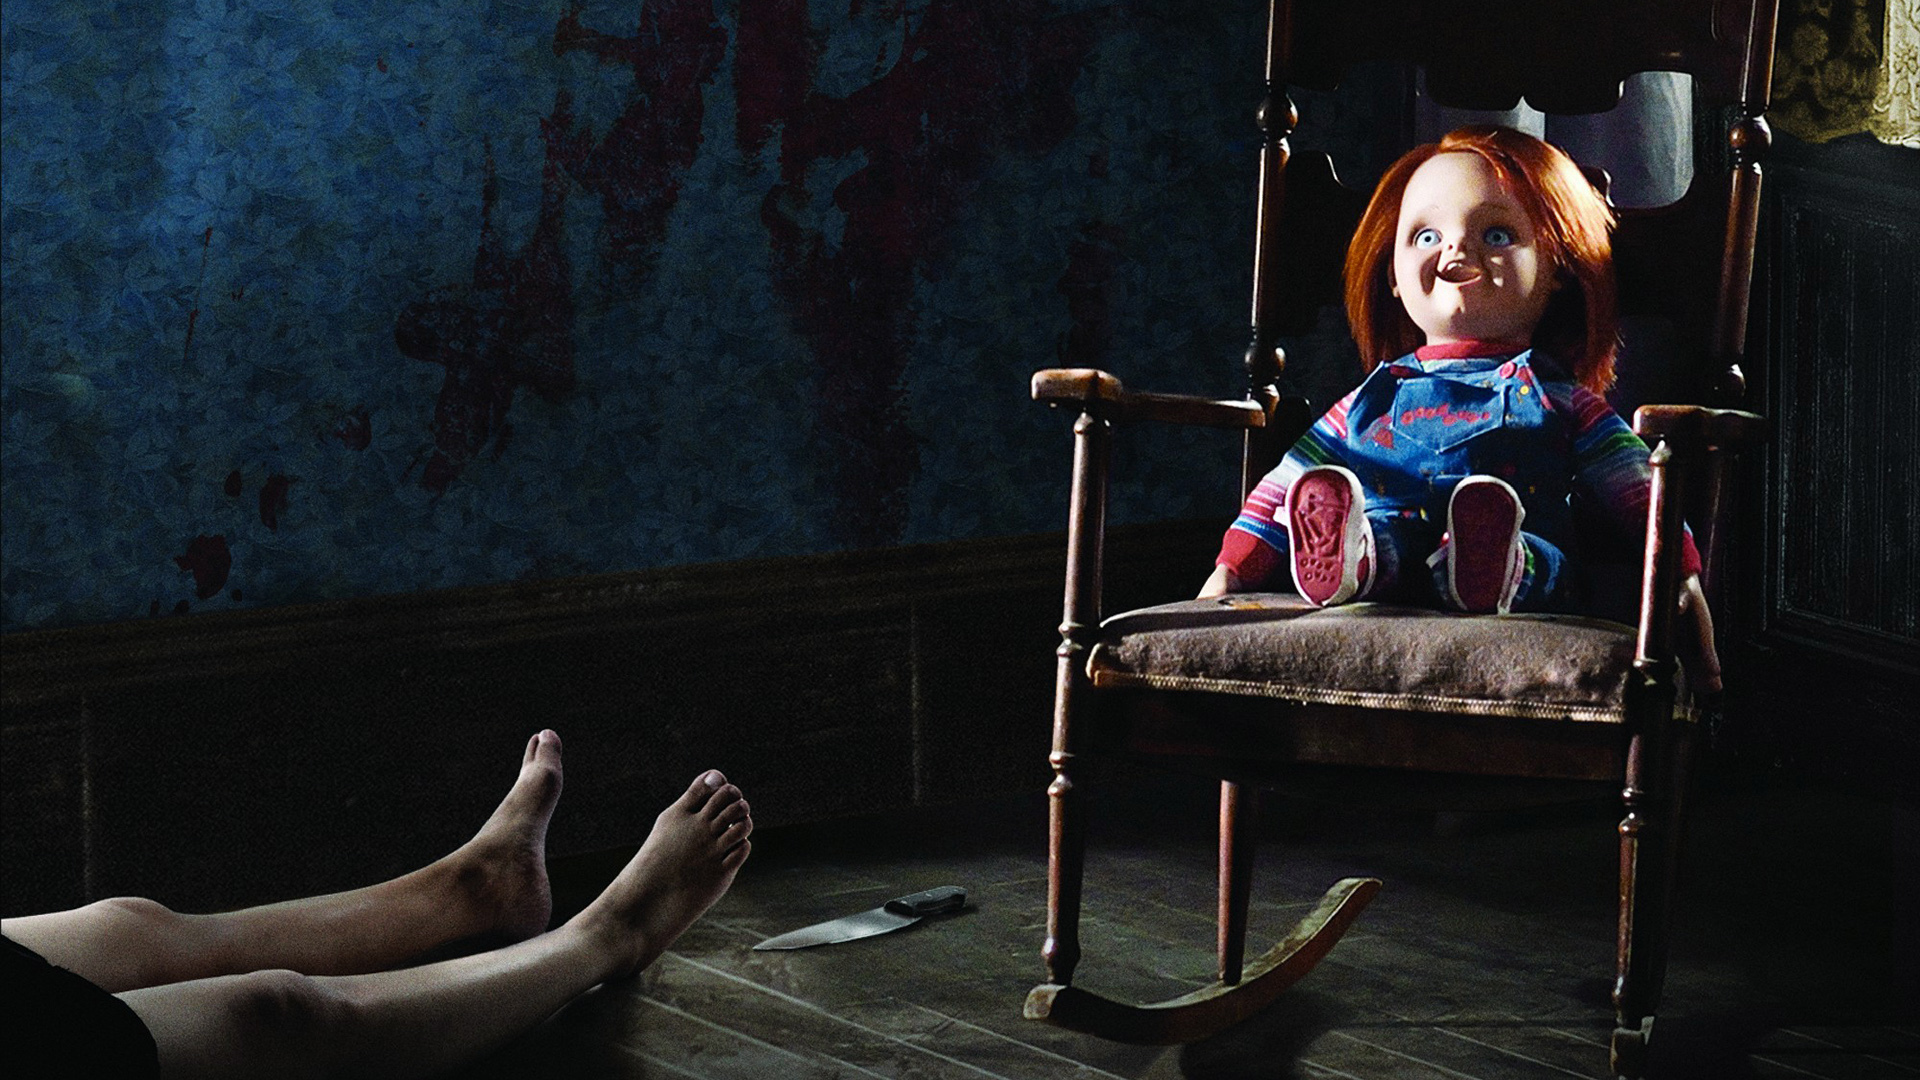 Parallax home of jesse maitland -  His Way Out Of The Package With A Knife Andy Having Anticipated Chucky Coming After Him Again Holds A Gun To Chucky S Head And Quotes